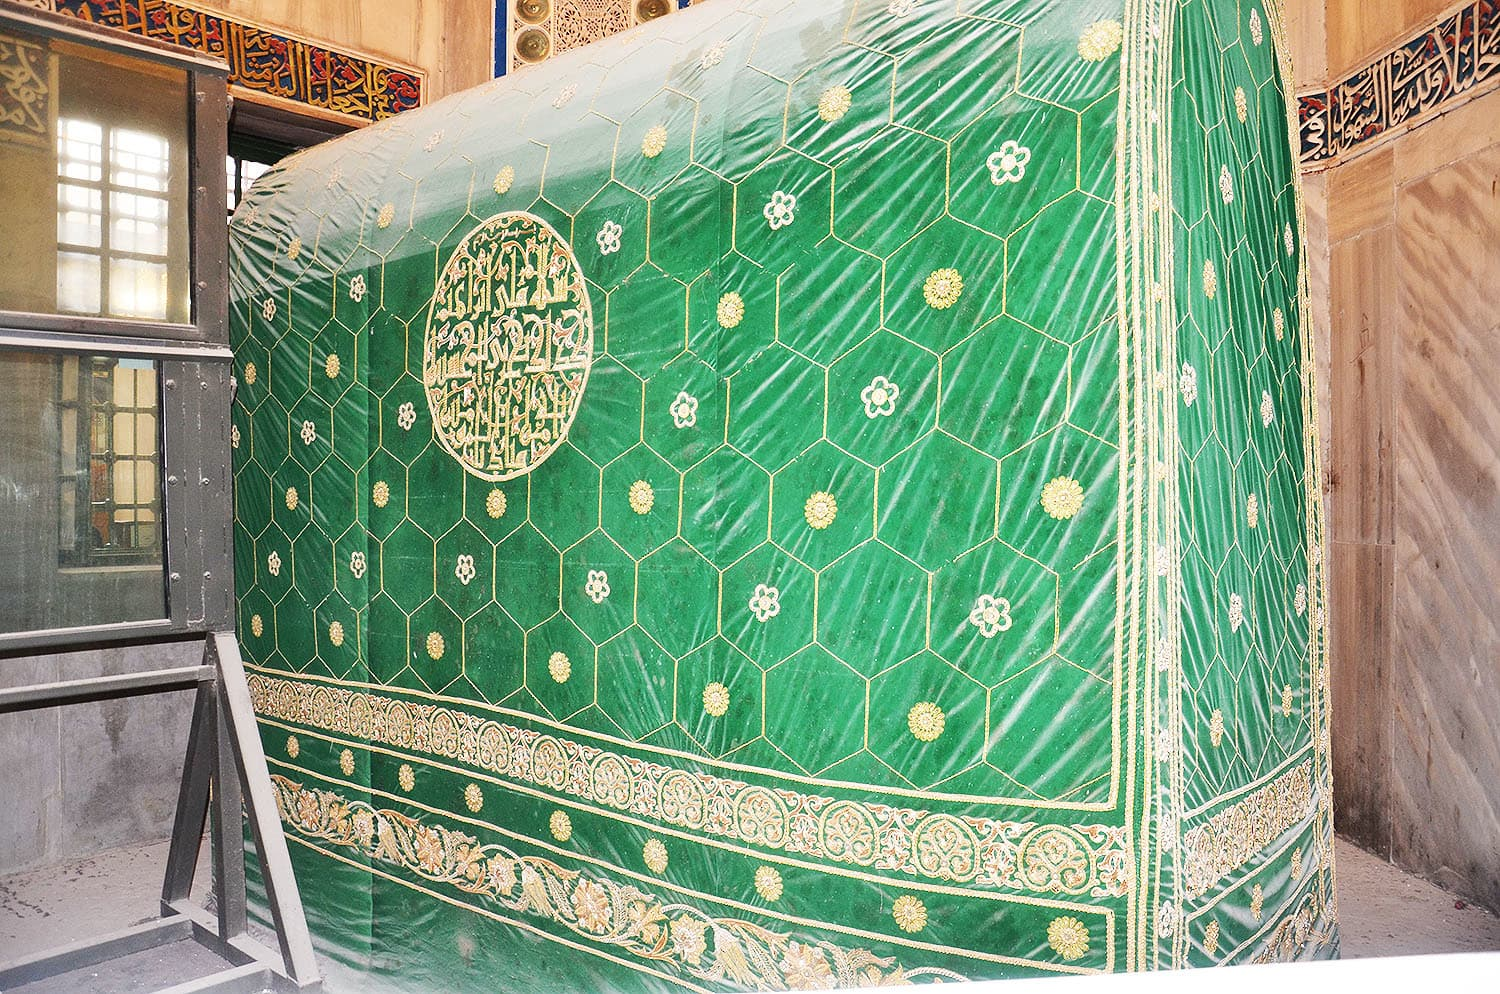 Shrine of Prophet Ibrahim.